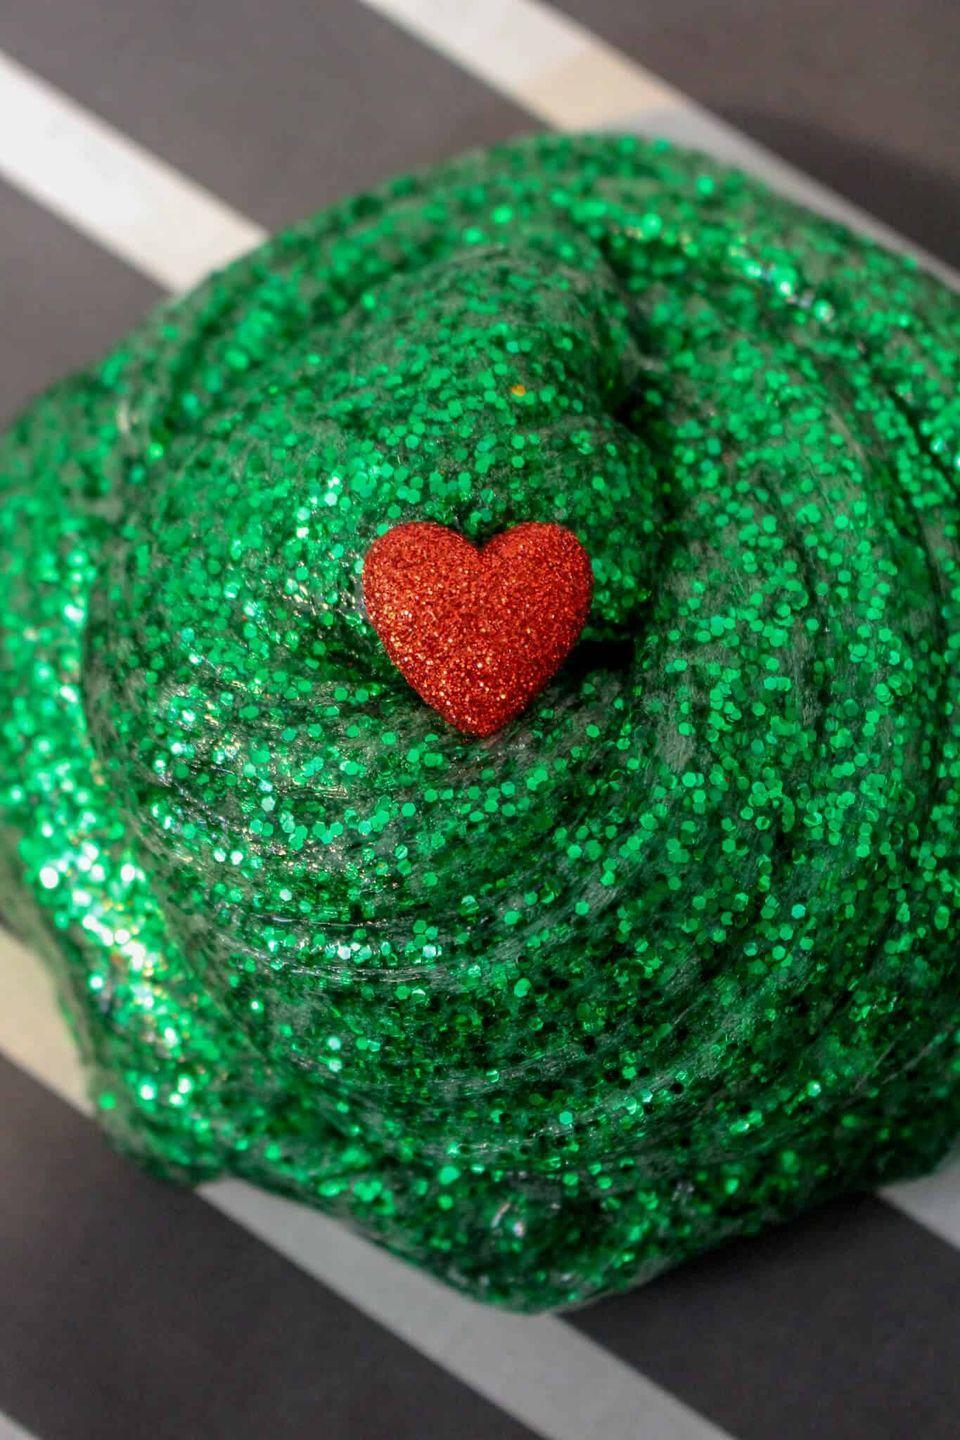 "<p>Slime is popular for its versatility, and the fact that it's extremely fun to play with! That's why your kids will enjoy mixing up a batch of Grinch-inspired slime—with a red heart to boot.</p><p><strong>Get the tutorial at <a href=""https://www.iheartartsncrafts.com/grinch-slime-recipe/"" rel=""nofollow noopener"" target=""_blank"" data-ylk=""slk:I Heart Arts 'n Crafts"" class=""link rapid-noclick-resp"">I Heart Arts 'n Crafts</a>.</strong></p><p><a class=""link rapid-noclick-resp"" href=""https://www.amazon.com/Pacon-Spectra-Sparkling-Crystals-91660/dp/B000J09NQS/ref=sr_1_2_sspa?tag=syn-yahoo-20&ascsubtag=%5Bartid%7C10050.g.5030%5Bsrc%7Cyahoo-us"" rel=""nofollow noopener"" target=""_blank"" data-ylk=""slk:SHOP GREEN GLITTER"">SHOP GREEN GLITTER</a></p>"